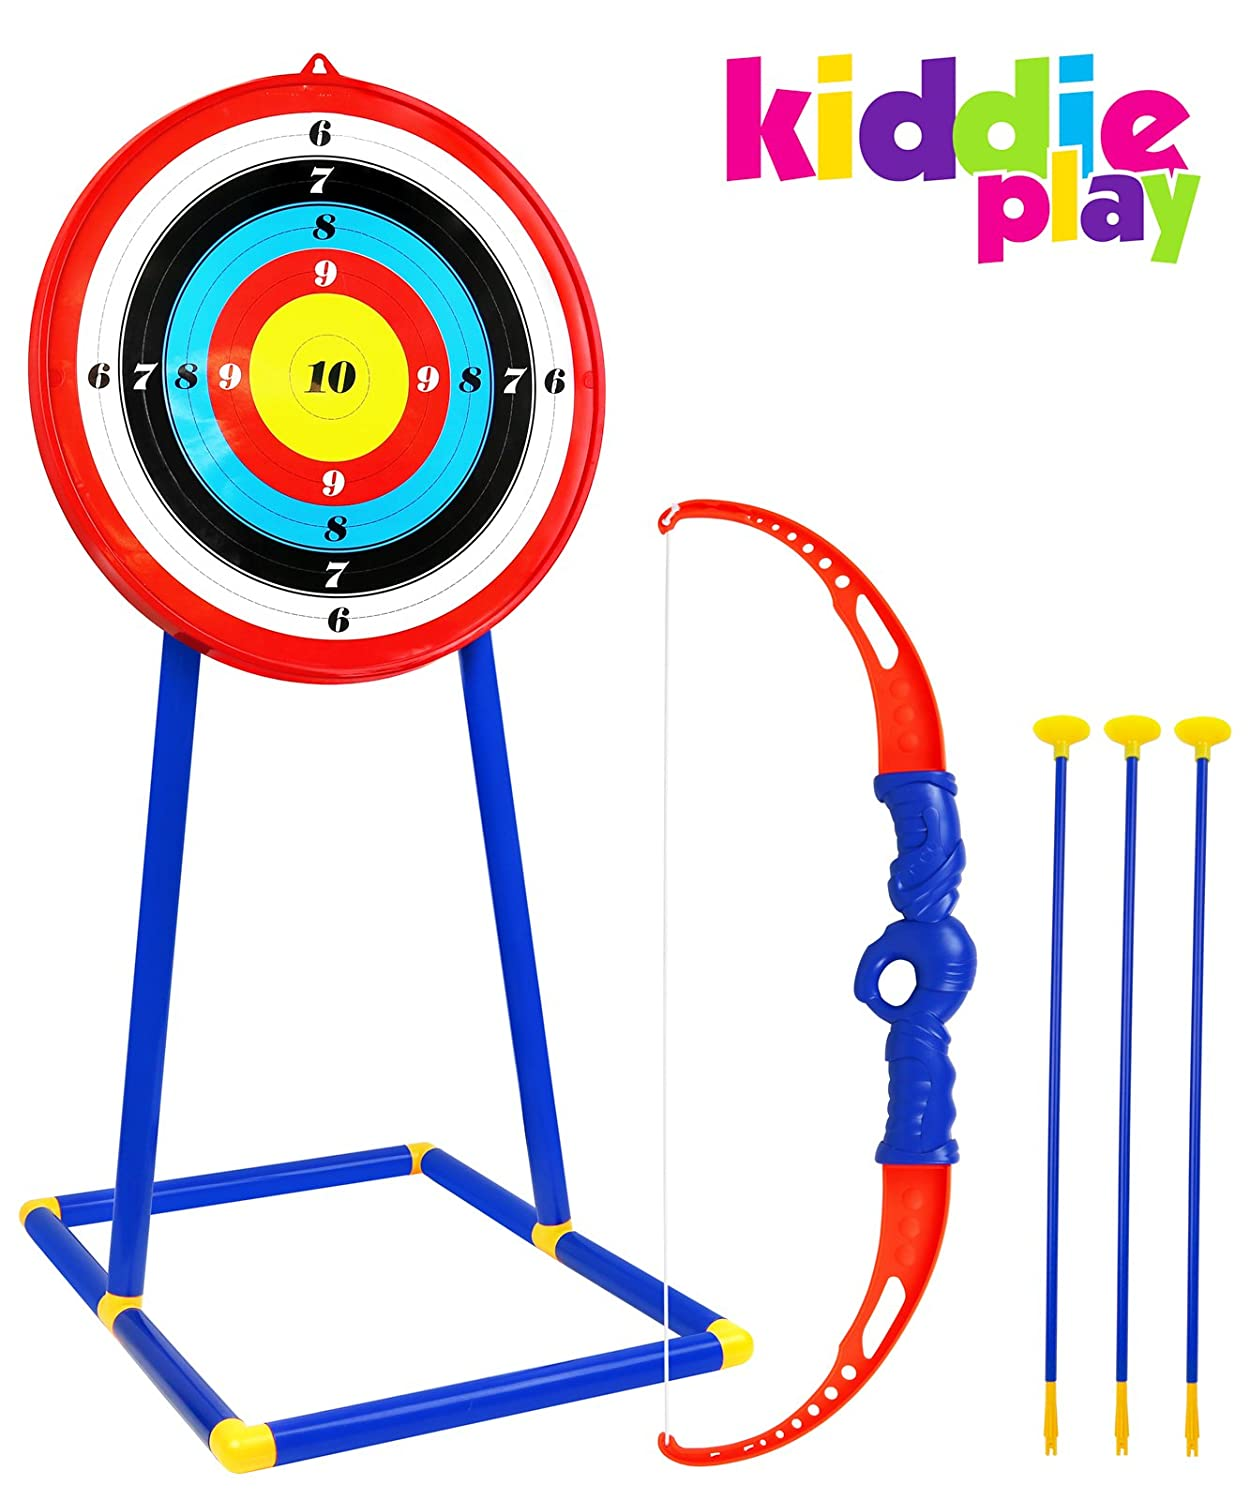 Amazon.com: Kiddie Play Toy Archery Set for Kids with Target and Bow ...